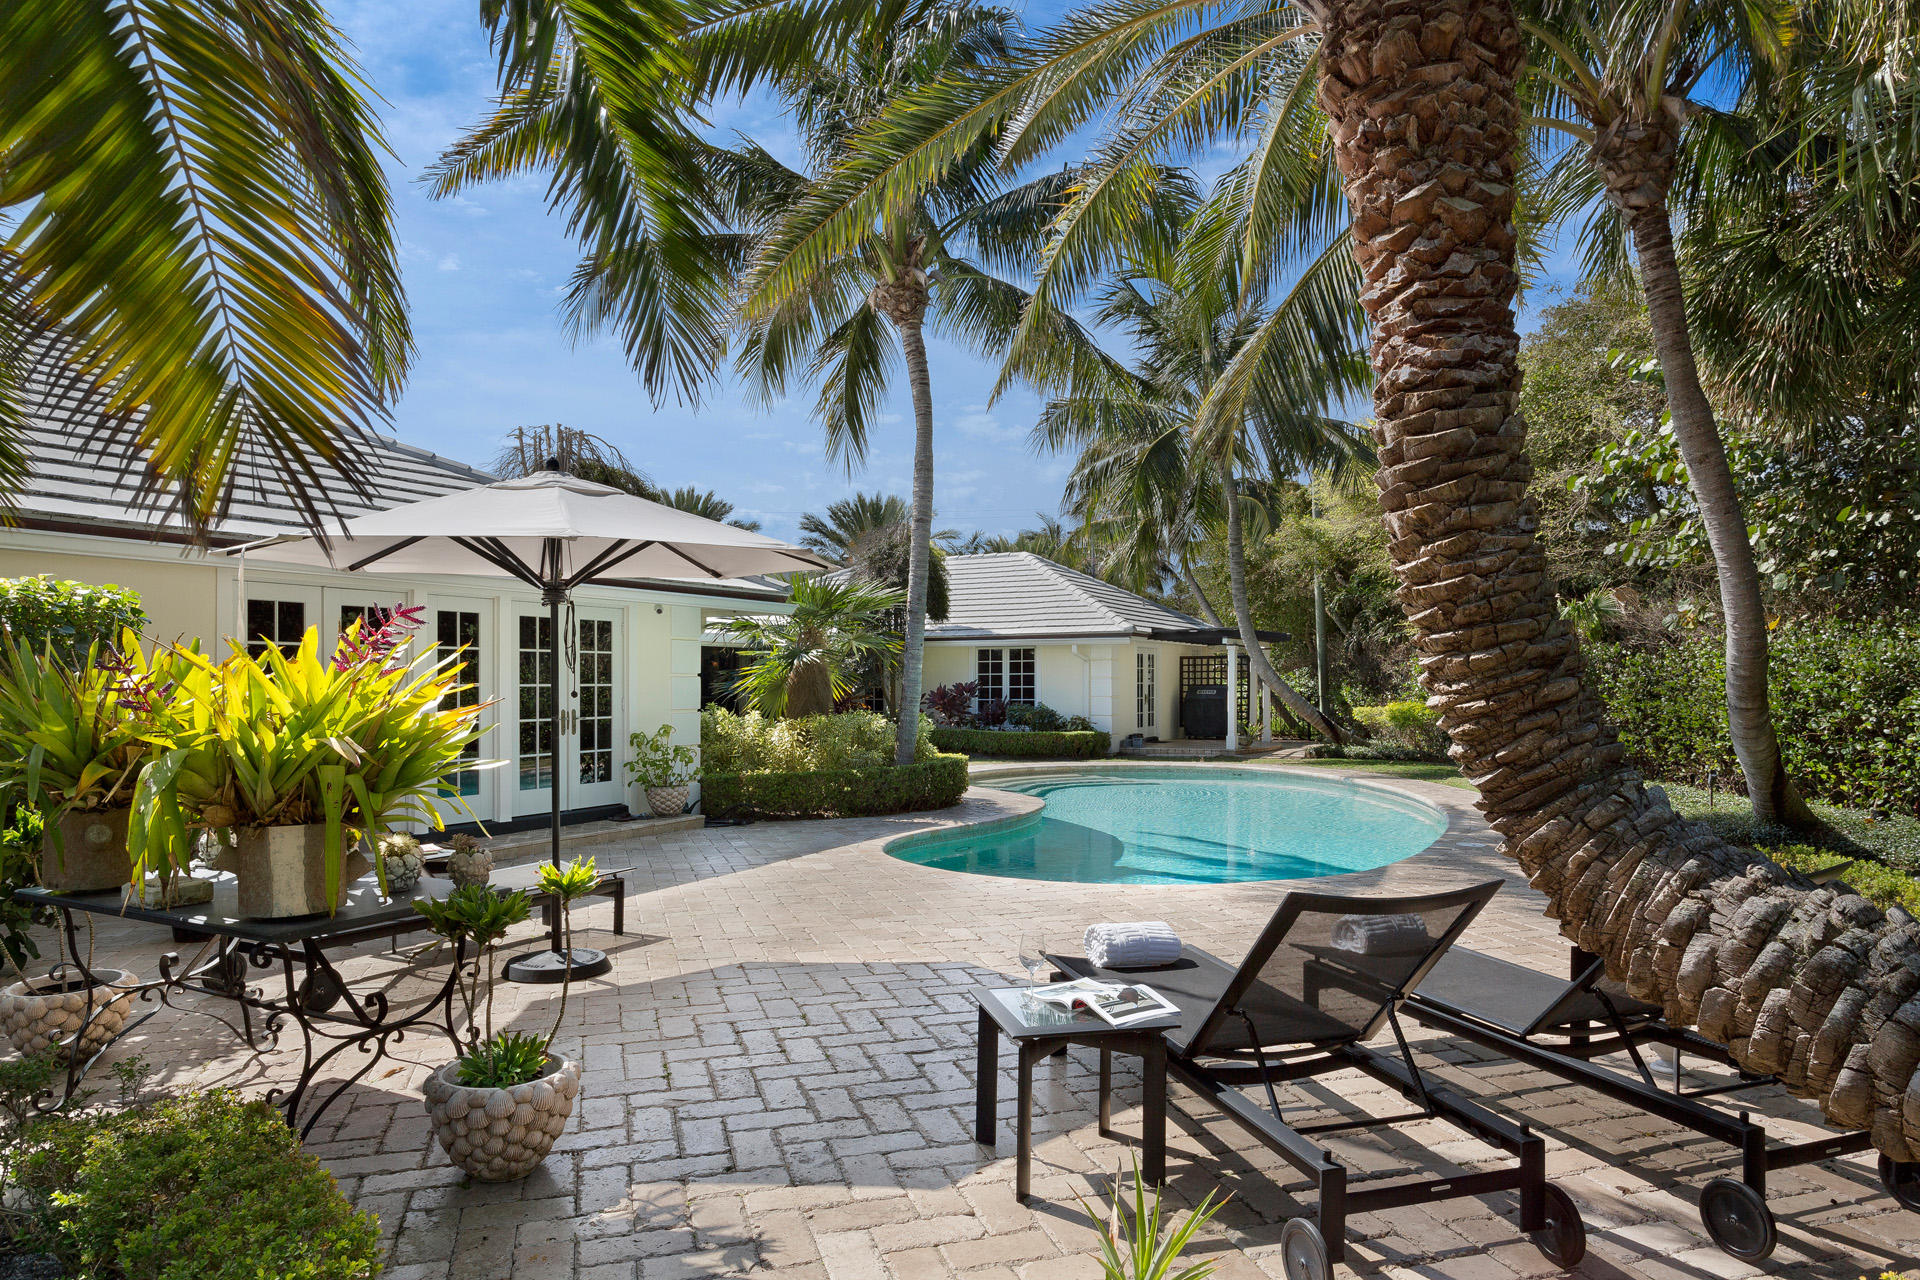 70 Curlew Road, Manalapan, Florida 33462, 5 Bedrooms Bedrooms, ,5.2 BathroomsBathrooms,Single Family Detached,For Sale,Curlew,RX-10571332